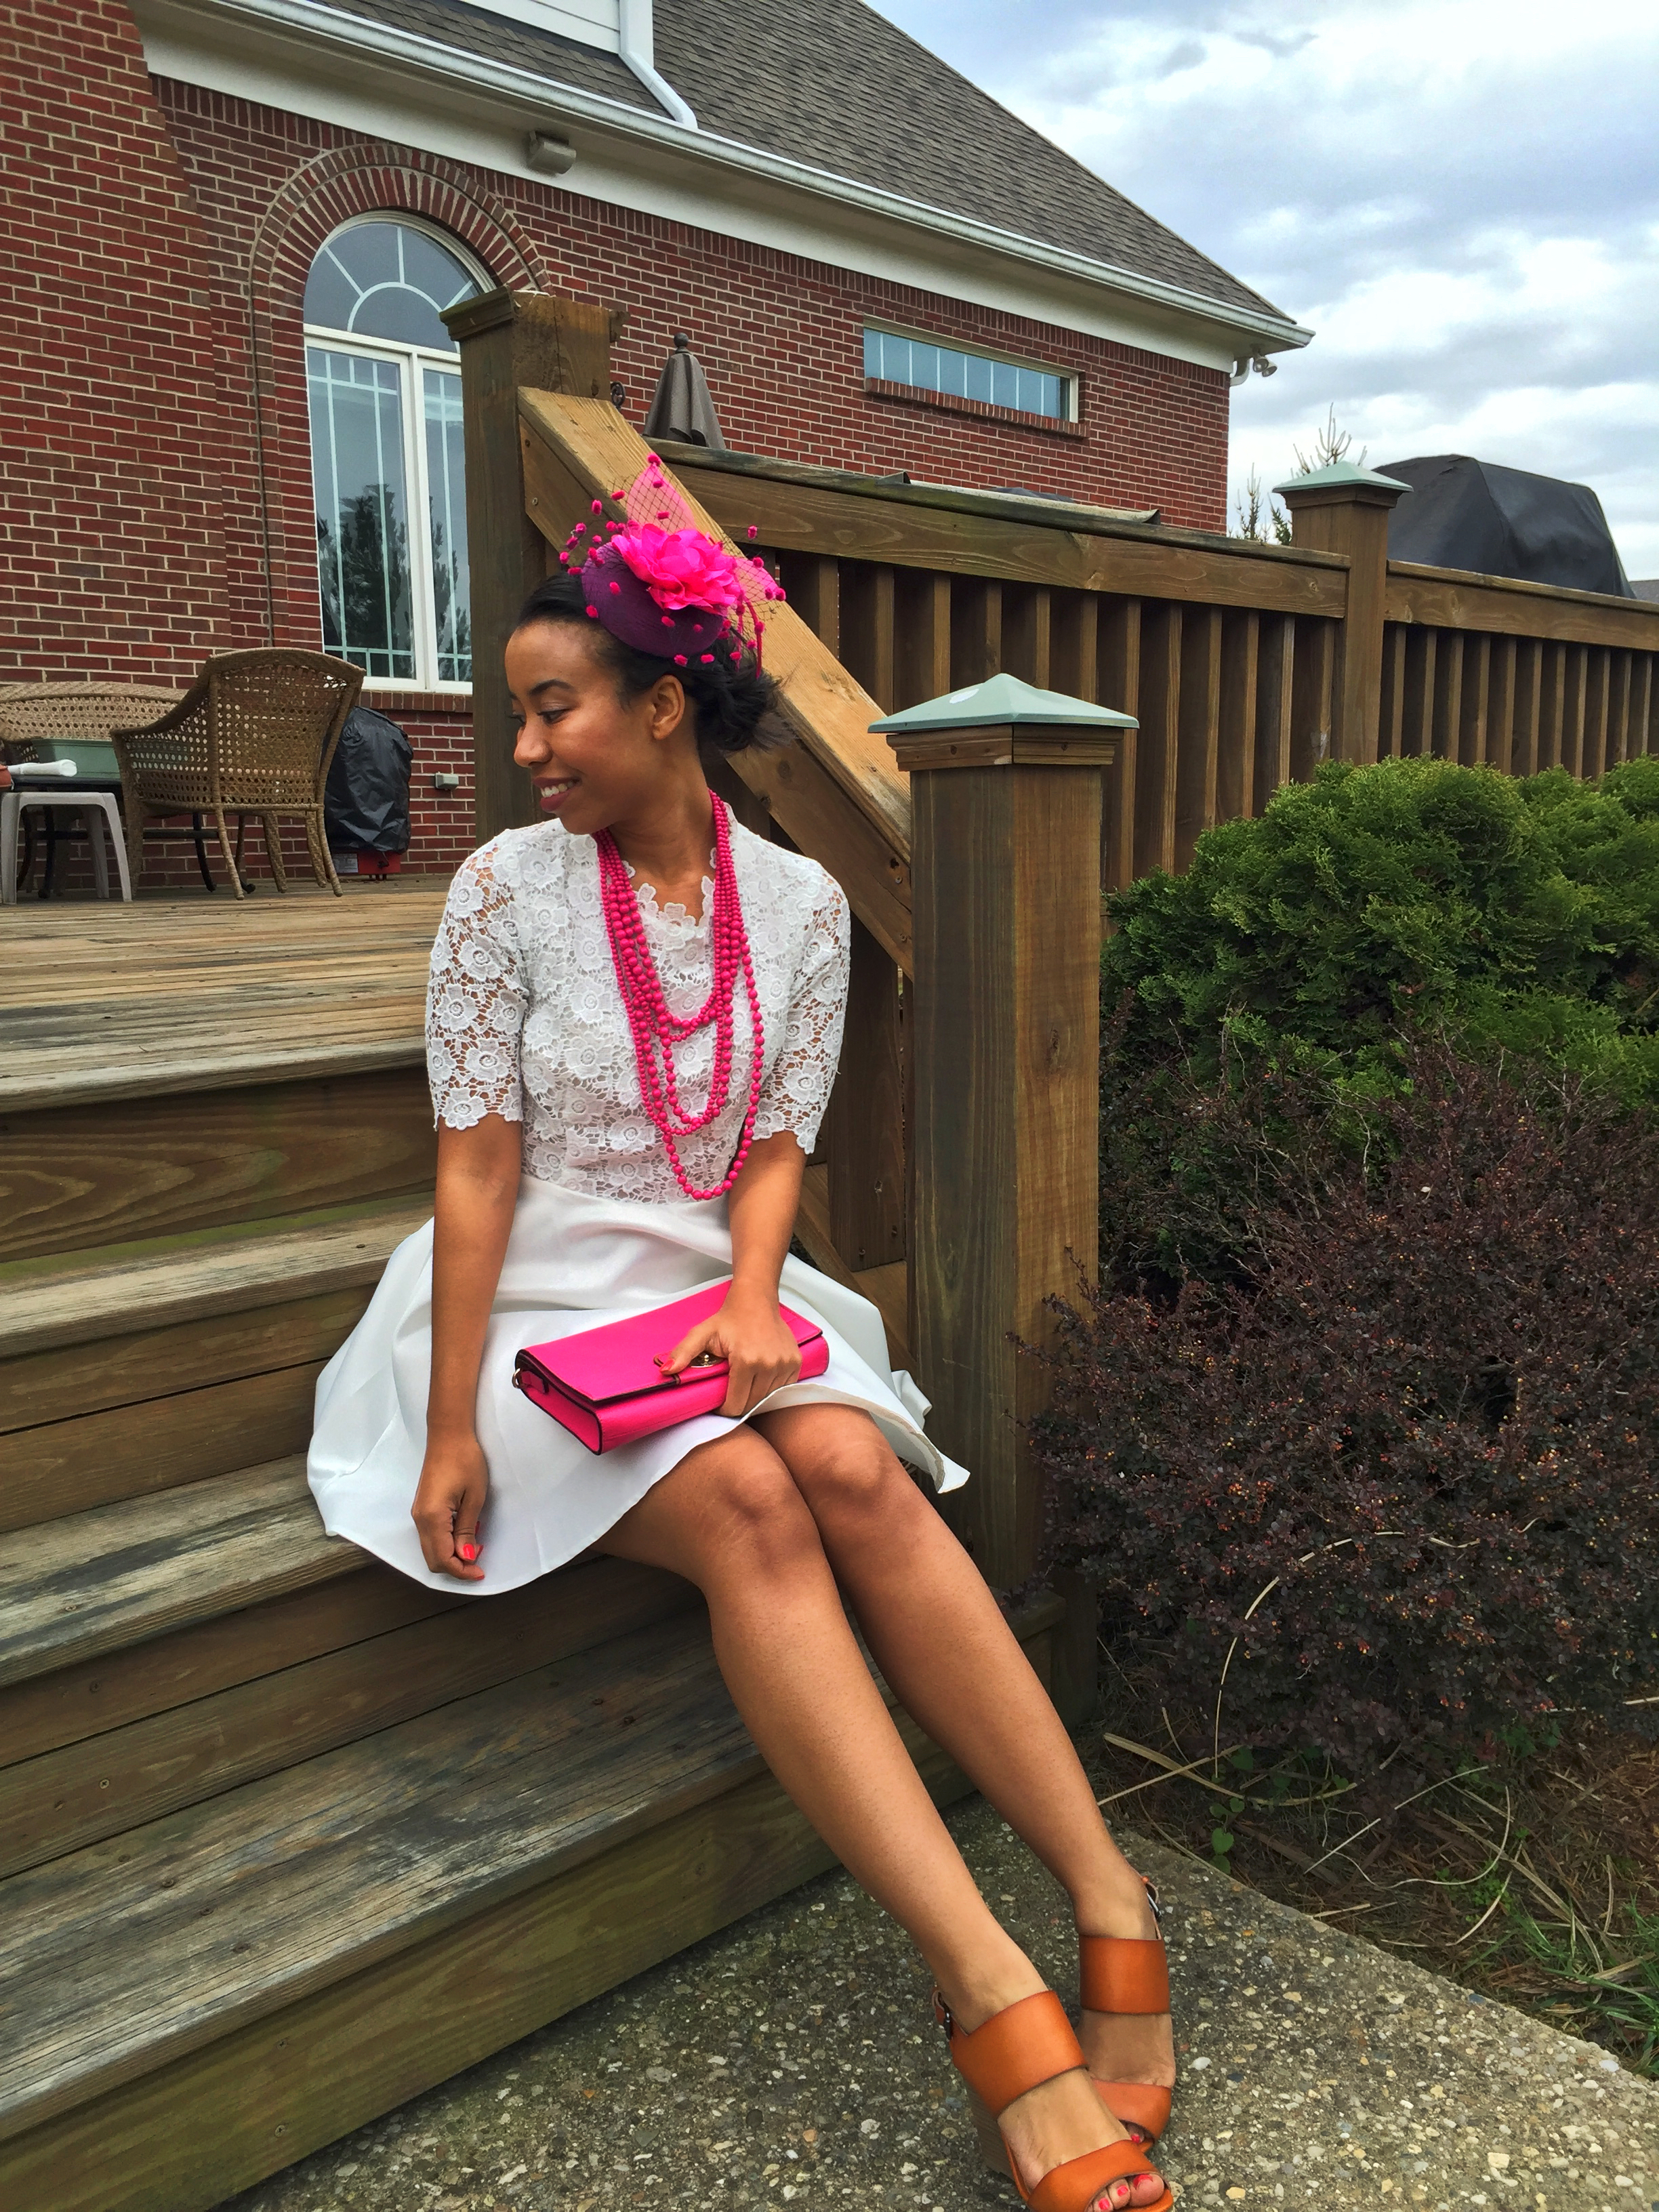 Derby Days: Pink for Kentucky Oaks